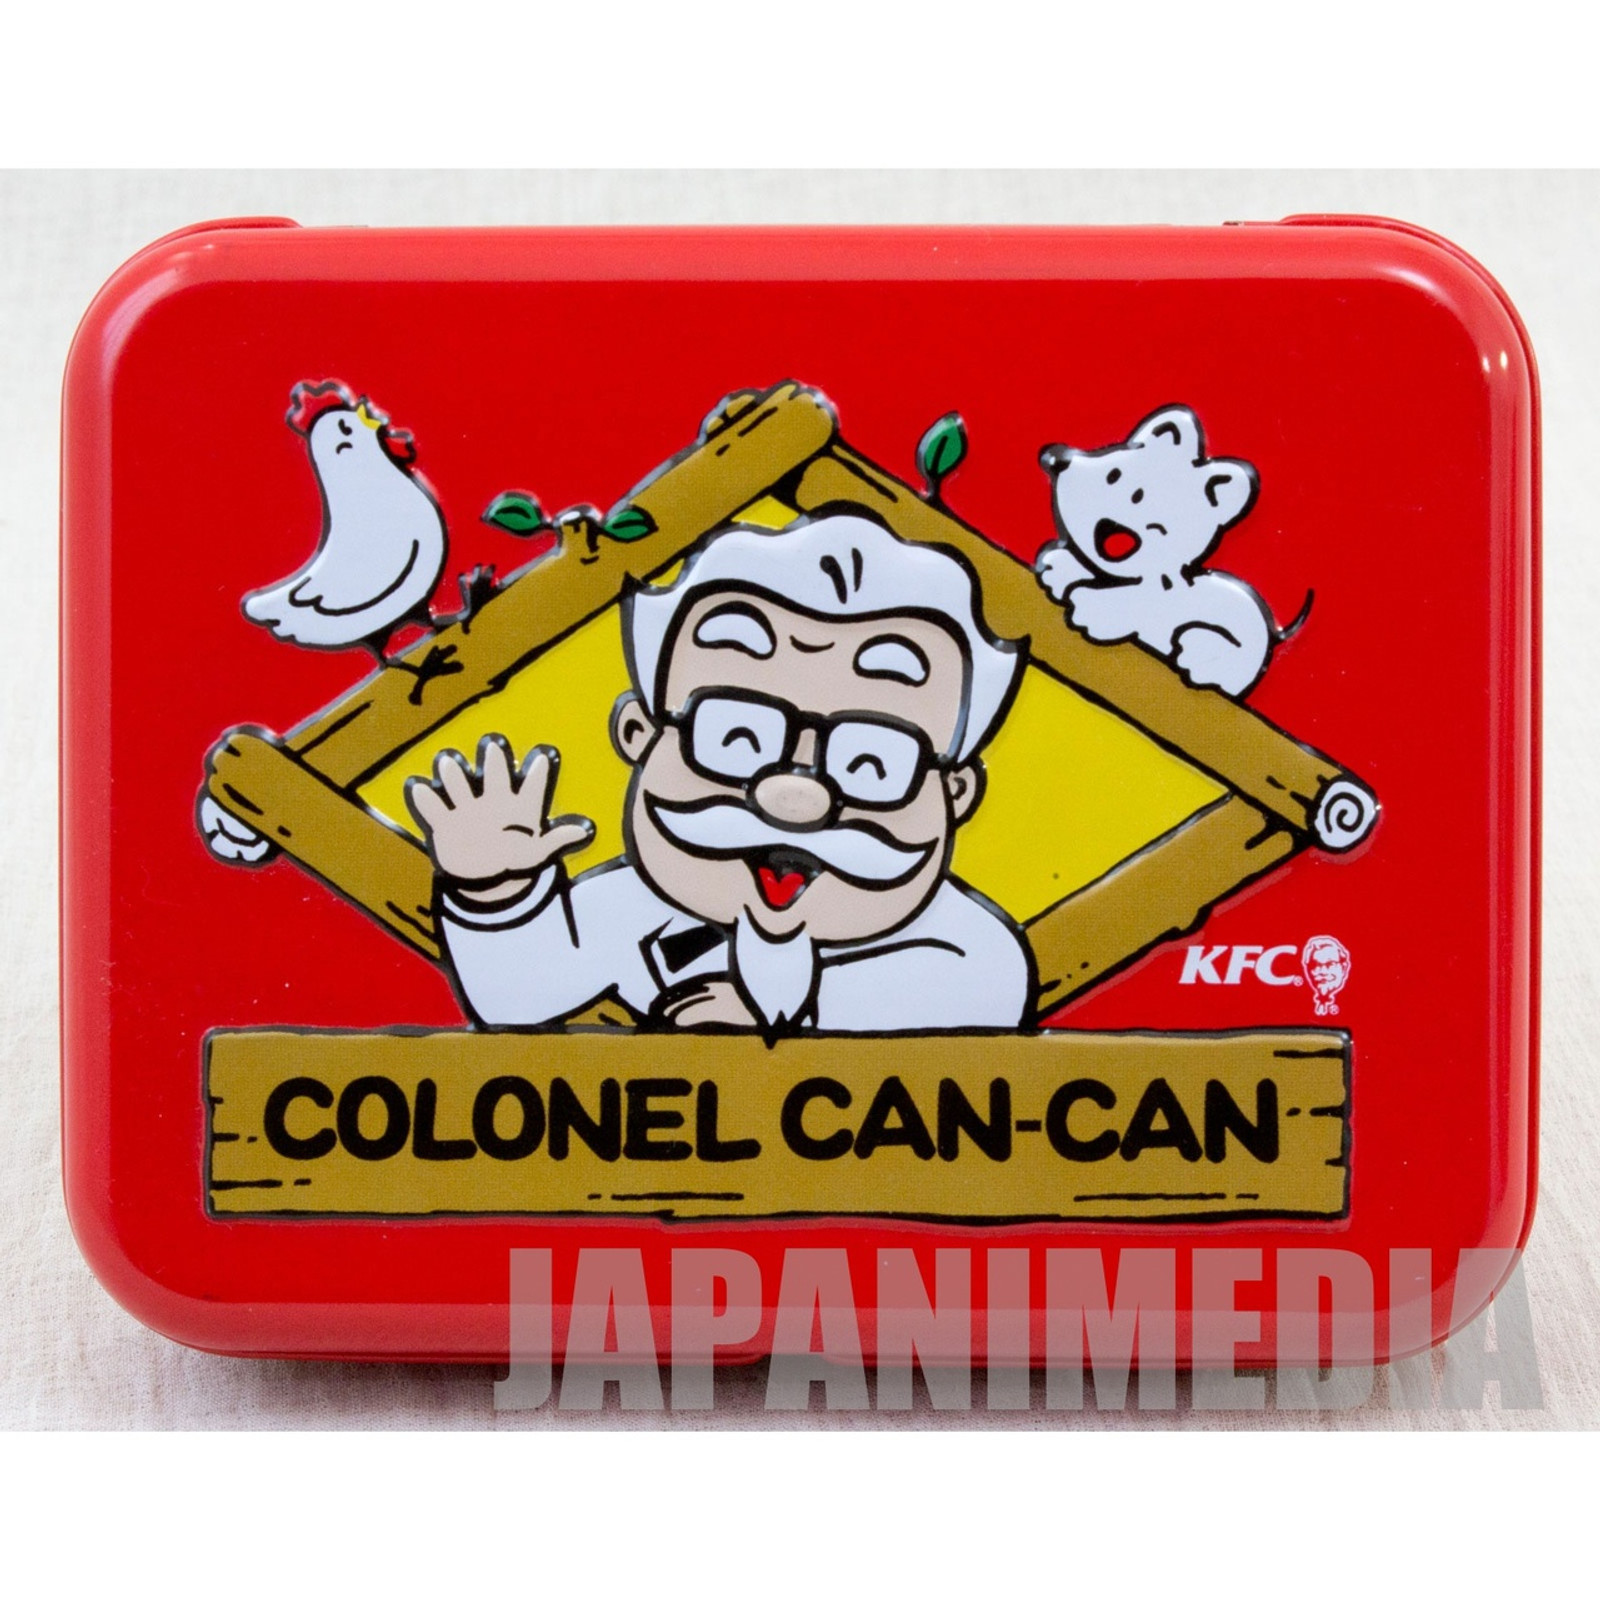 KFC COLONEL CAN CAN Colonel Sanders Can Case 2012 JAPAN